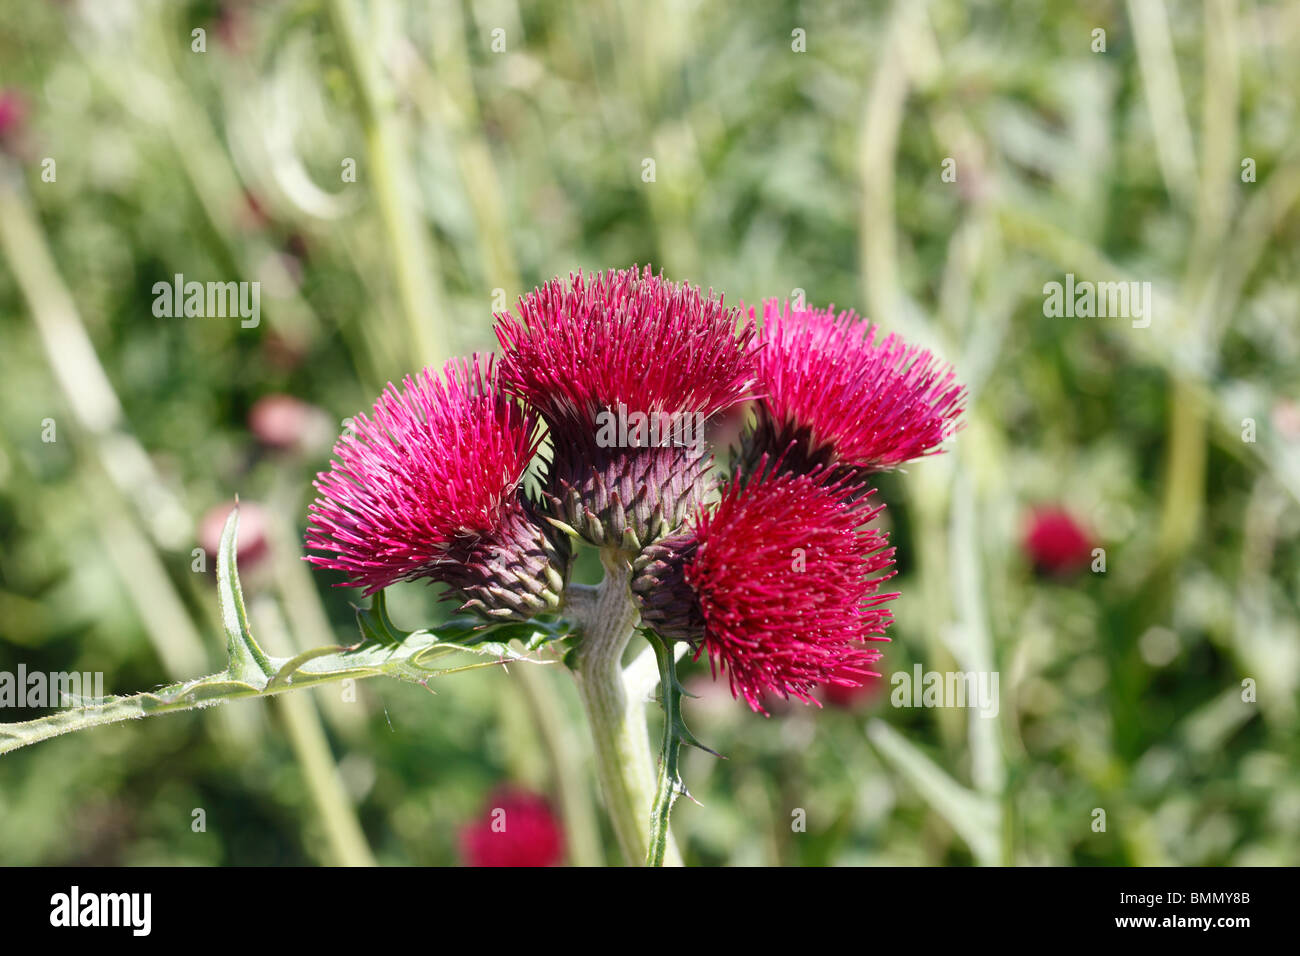 Thistle (Cirsium rivulum atropurpureum) close up of flowers - Stock Image